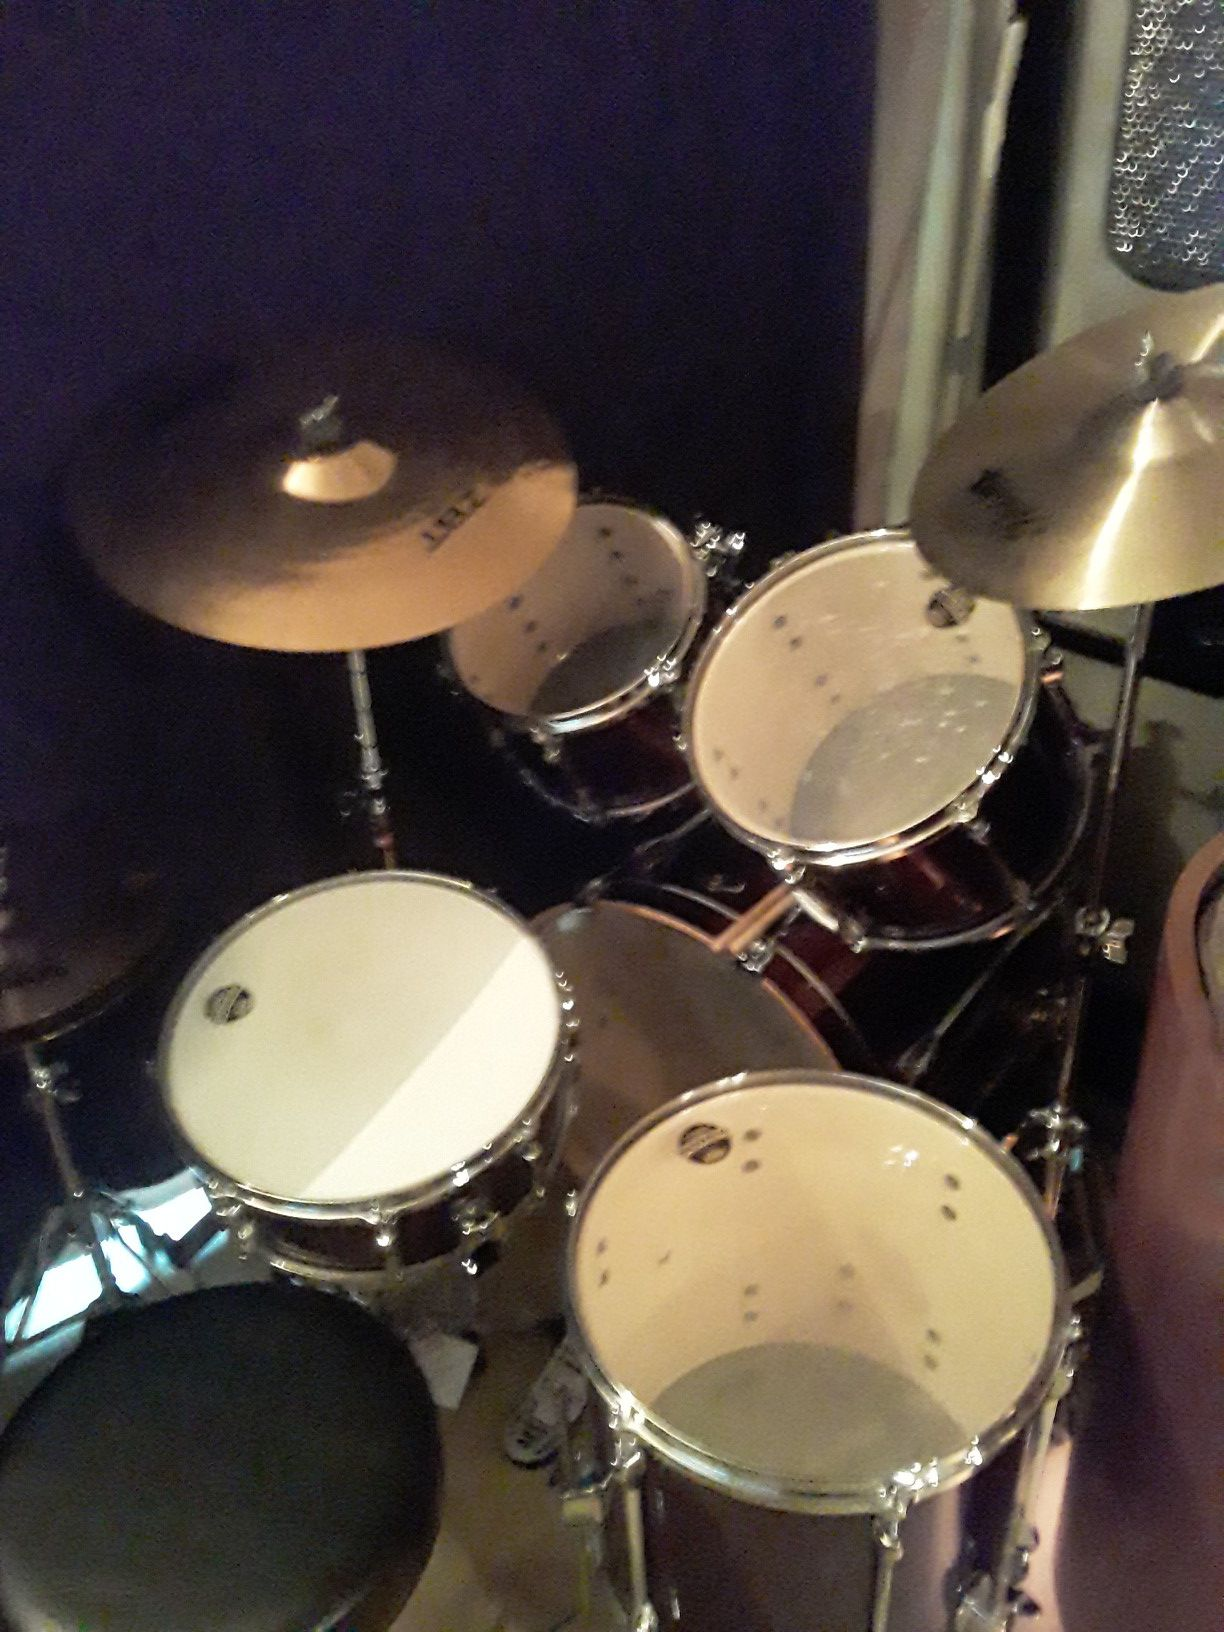 Tama 5 piece brand new drum set including Hardware and symbols and seat